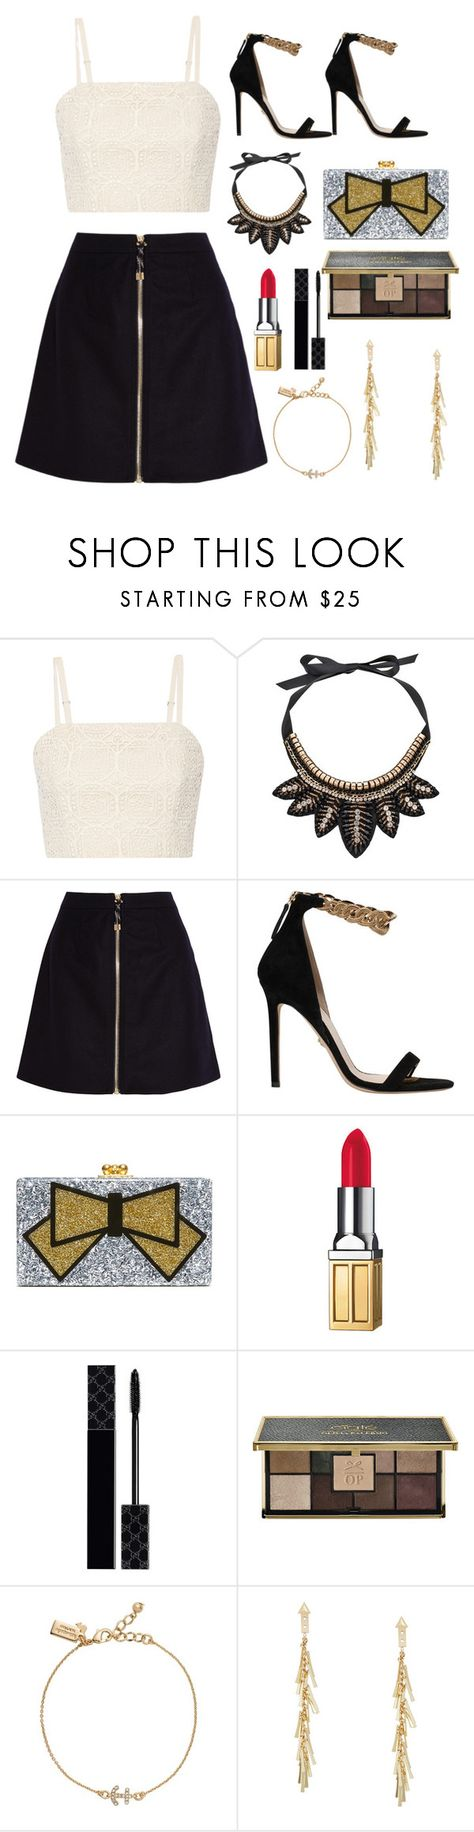 """White, Black and Gold"" by lydiamart ❤ liked on Polyvore featuring Alice + Olivia, Gemma Simone, Acne Studios, Versace, Edie Parker, Elizabeth Arden, Gucci, Ciaté, Kate Spade and BCBGMAXAZRIA"